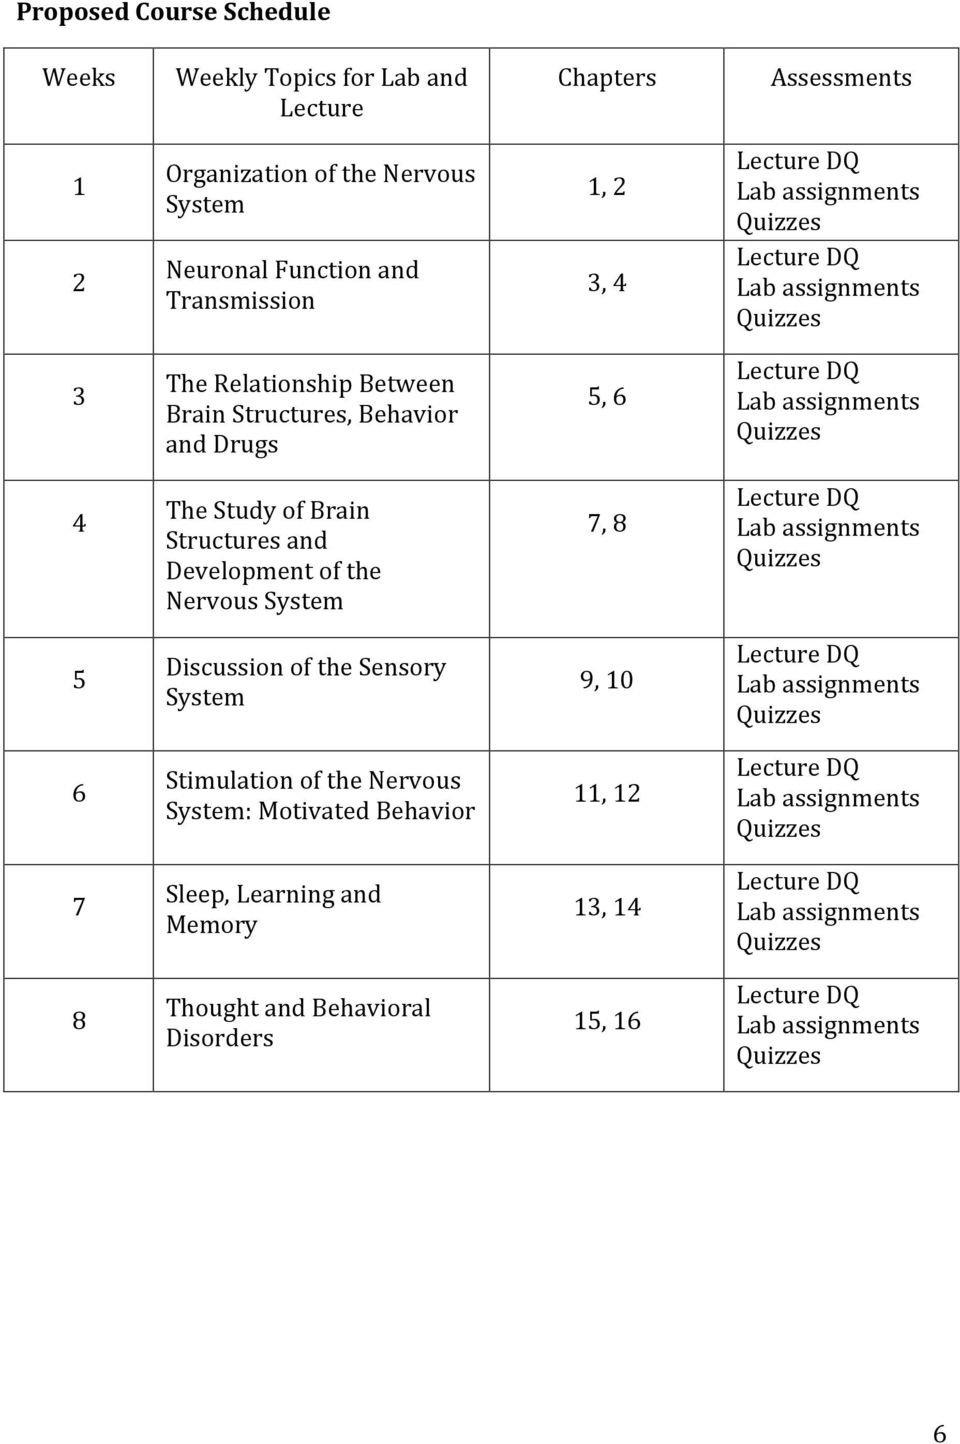 Study of Brain Structures and Development of the Nervous System 7, 8 5 Discussion of the Sensory System 9, 10 6 Stimulation